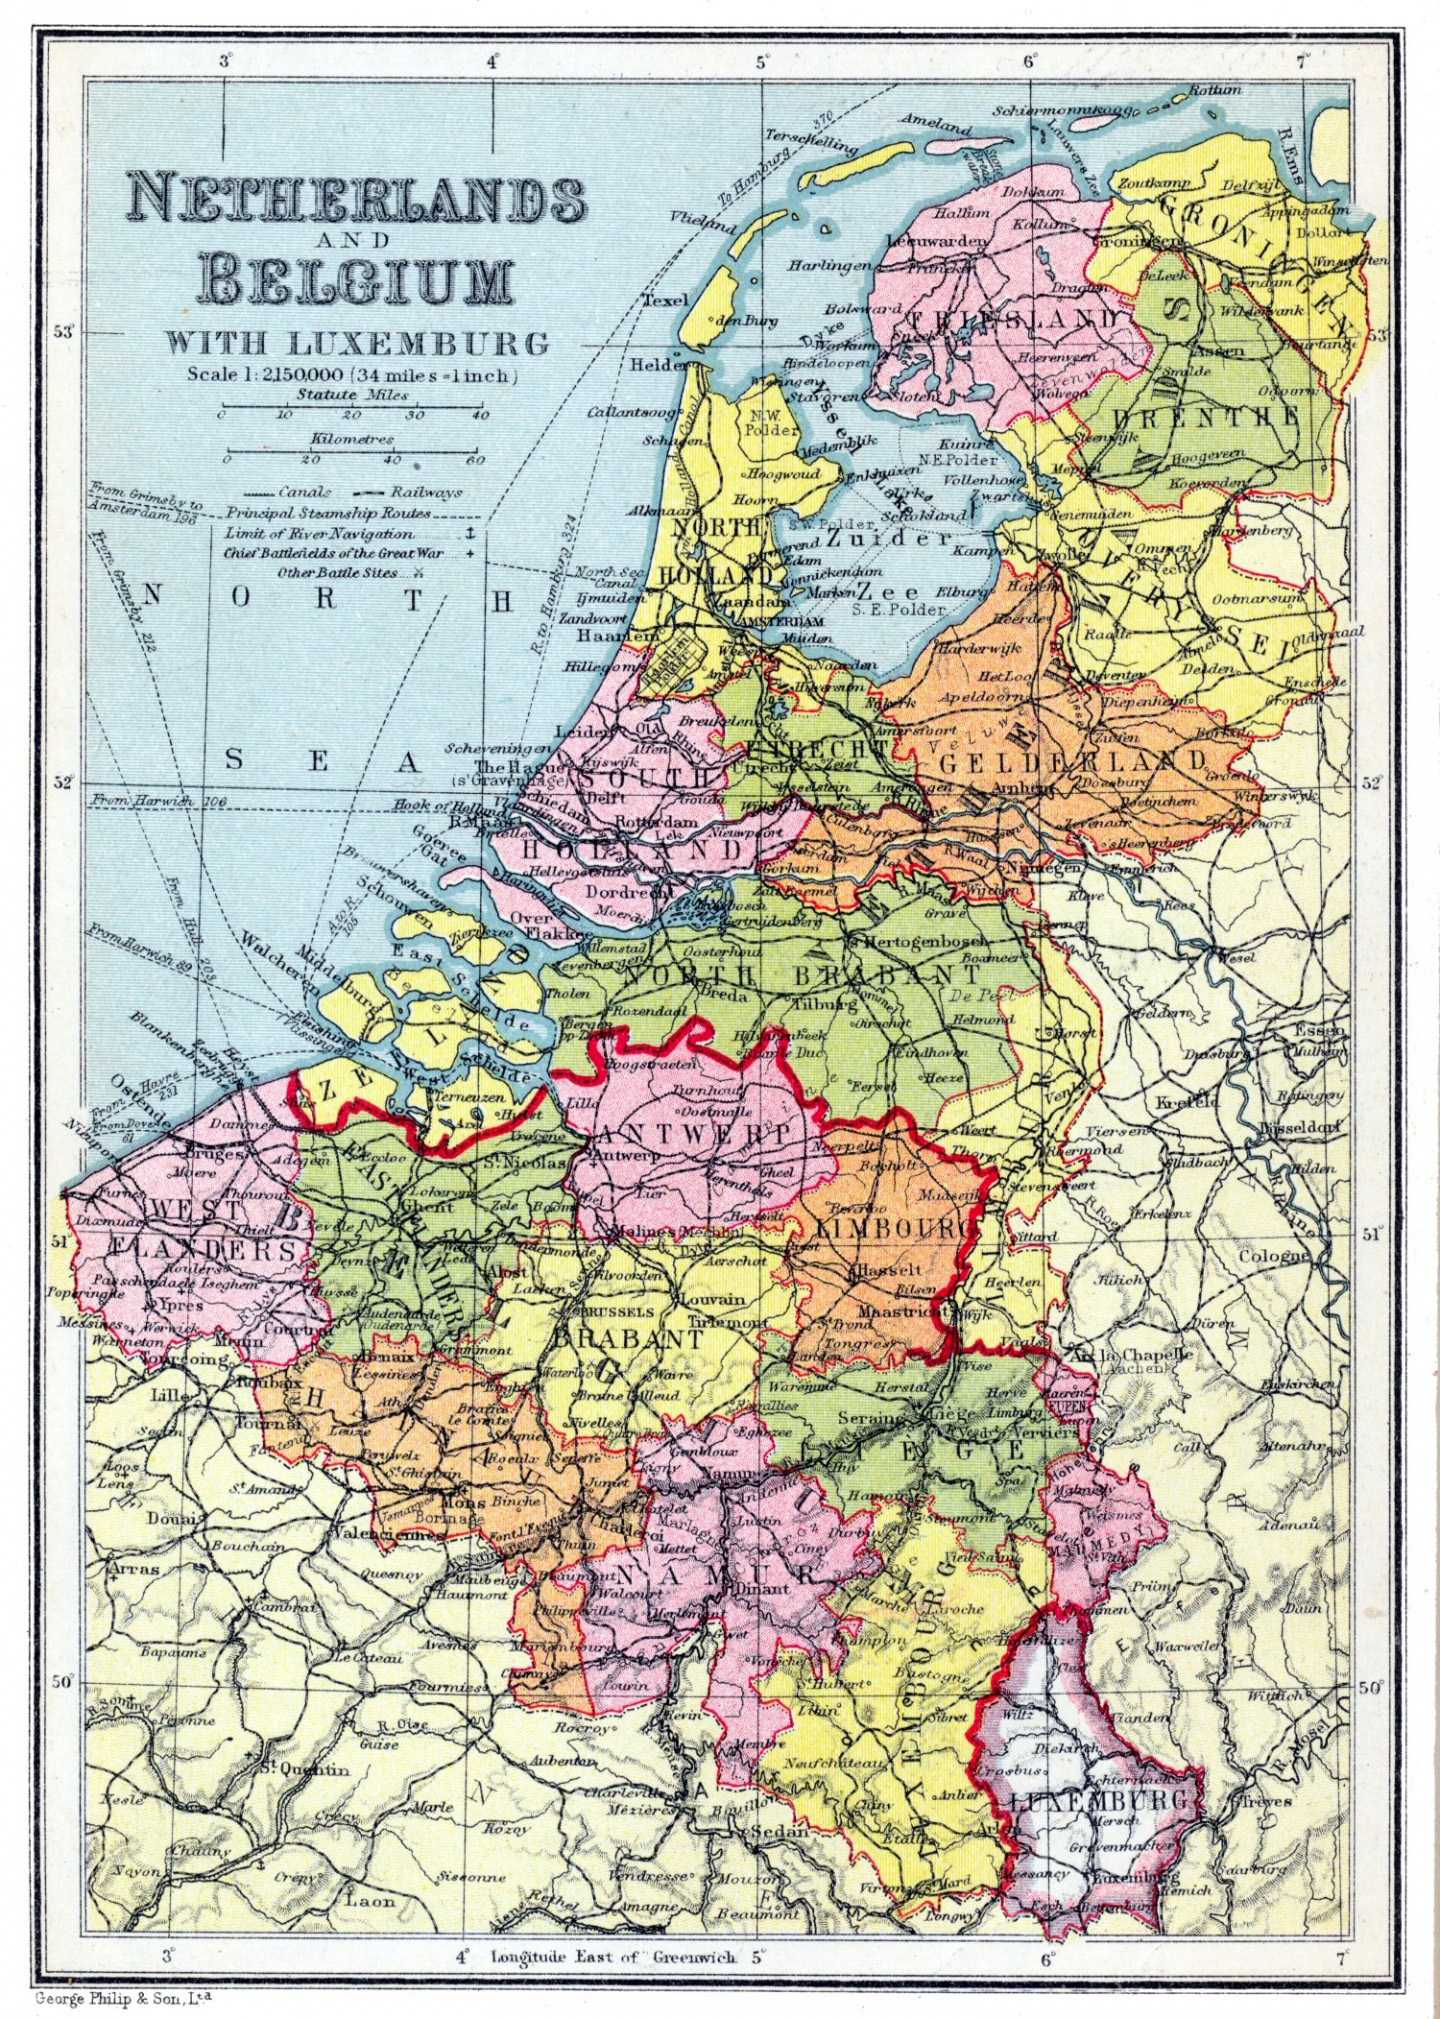 additionally Benelux 3 great counties  Belgium   herlands   Luxembourg together with Map of Benelux   RailP likewise Light Pollution map of the  herlands Belgium and Luxembourg  the furthermore  in addition Map Maps Of France Belgium  herlands Germany – vaticanjs info as well  furthermore Historical Maps of the  herlands also  as well  likewise Large detailed old political and administrative map of  herlands likewise  together with Language maps of  herlands as well maps  The  herlands Map Political Of Europe Belgium  The likewise herlands To Belgium Train Map additionally Thematic Mapping  Dutch people in Belgium   mappixie. on belgium and netherlands map